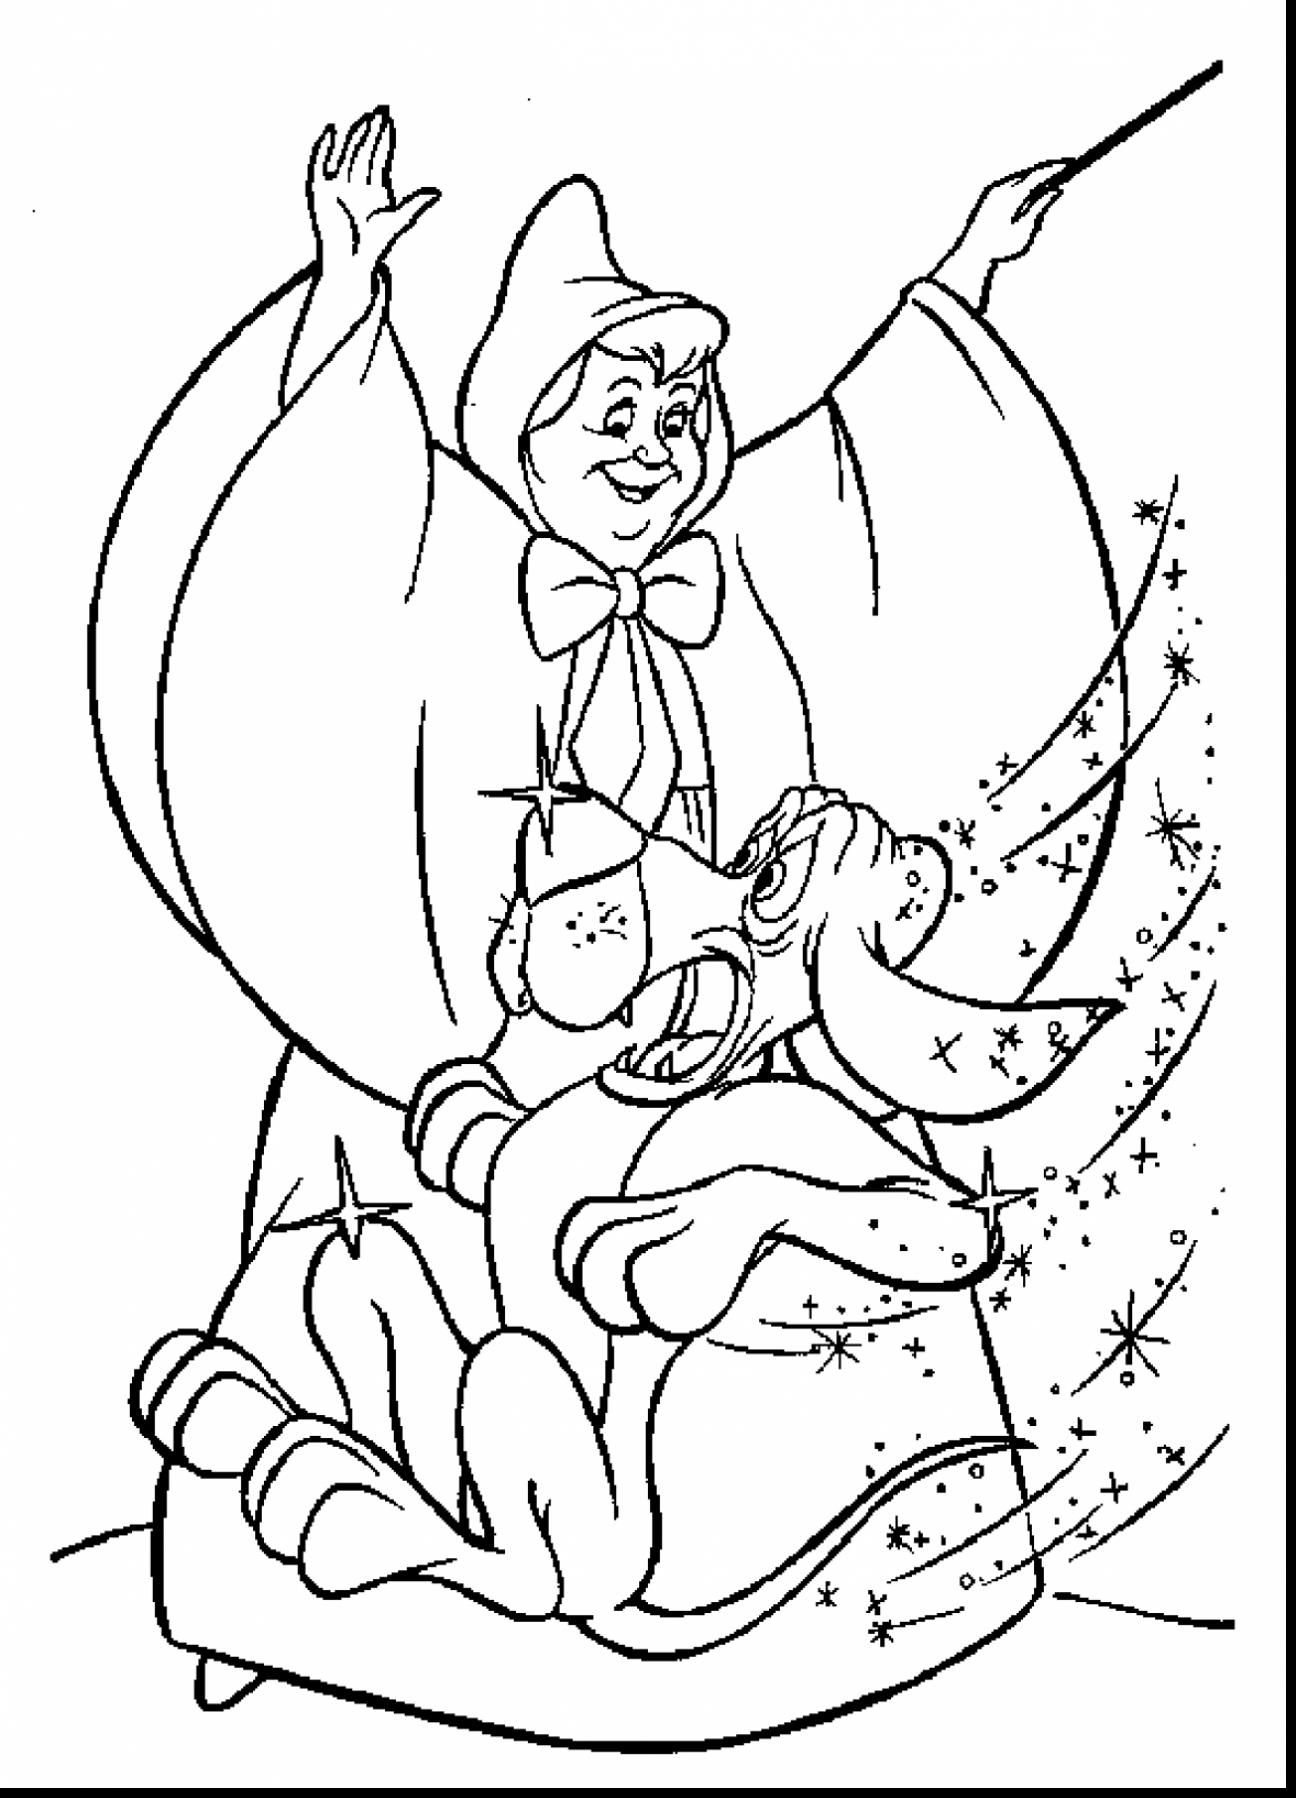 Cinderella Slipper Coloring Pages At Getdrawings Com Free For